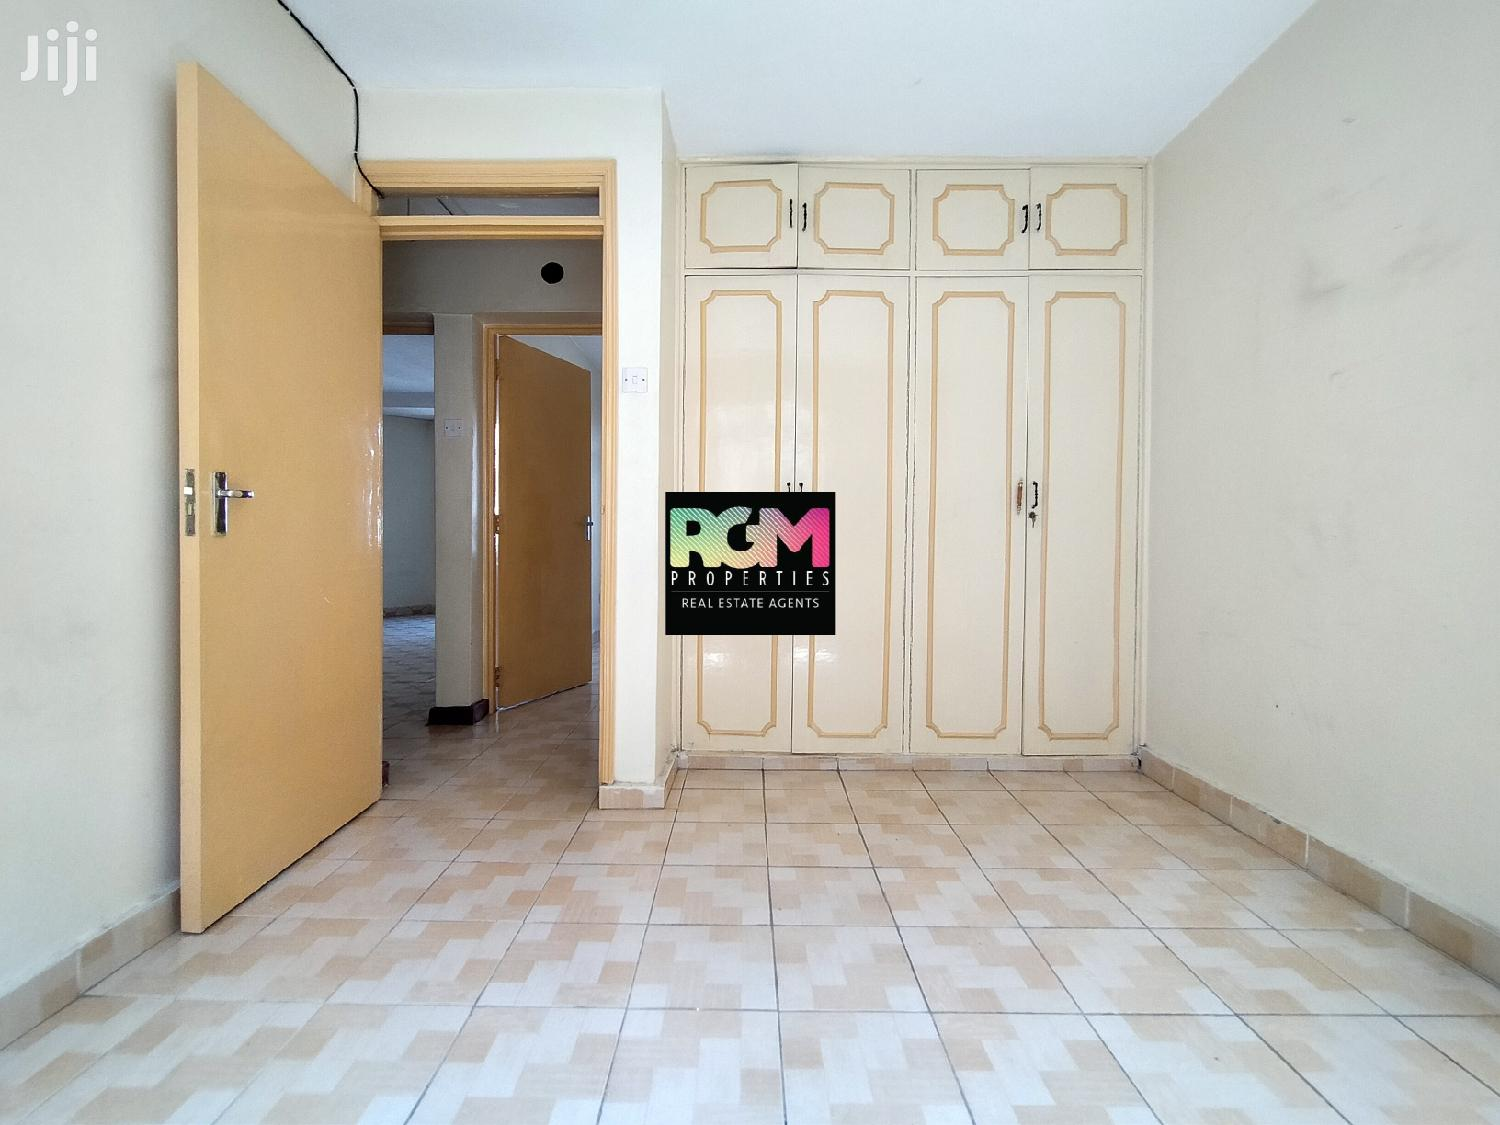 Spacious 2 Bedroom Apartment To Let Nairobi West In Nairobi West Houses Apartments For Rent Rgmproperties And Consultants Jiji Co Ke